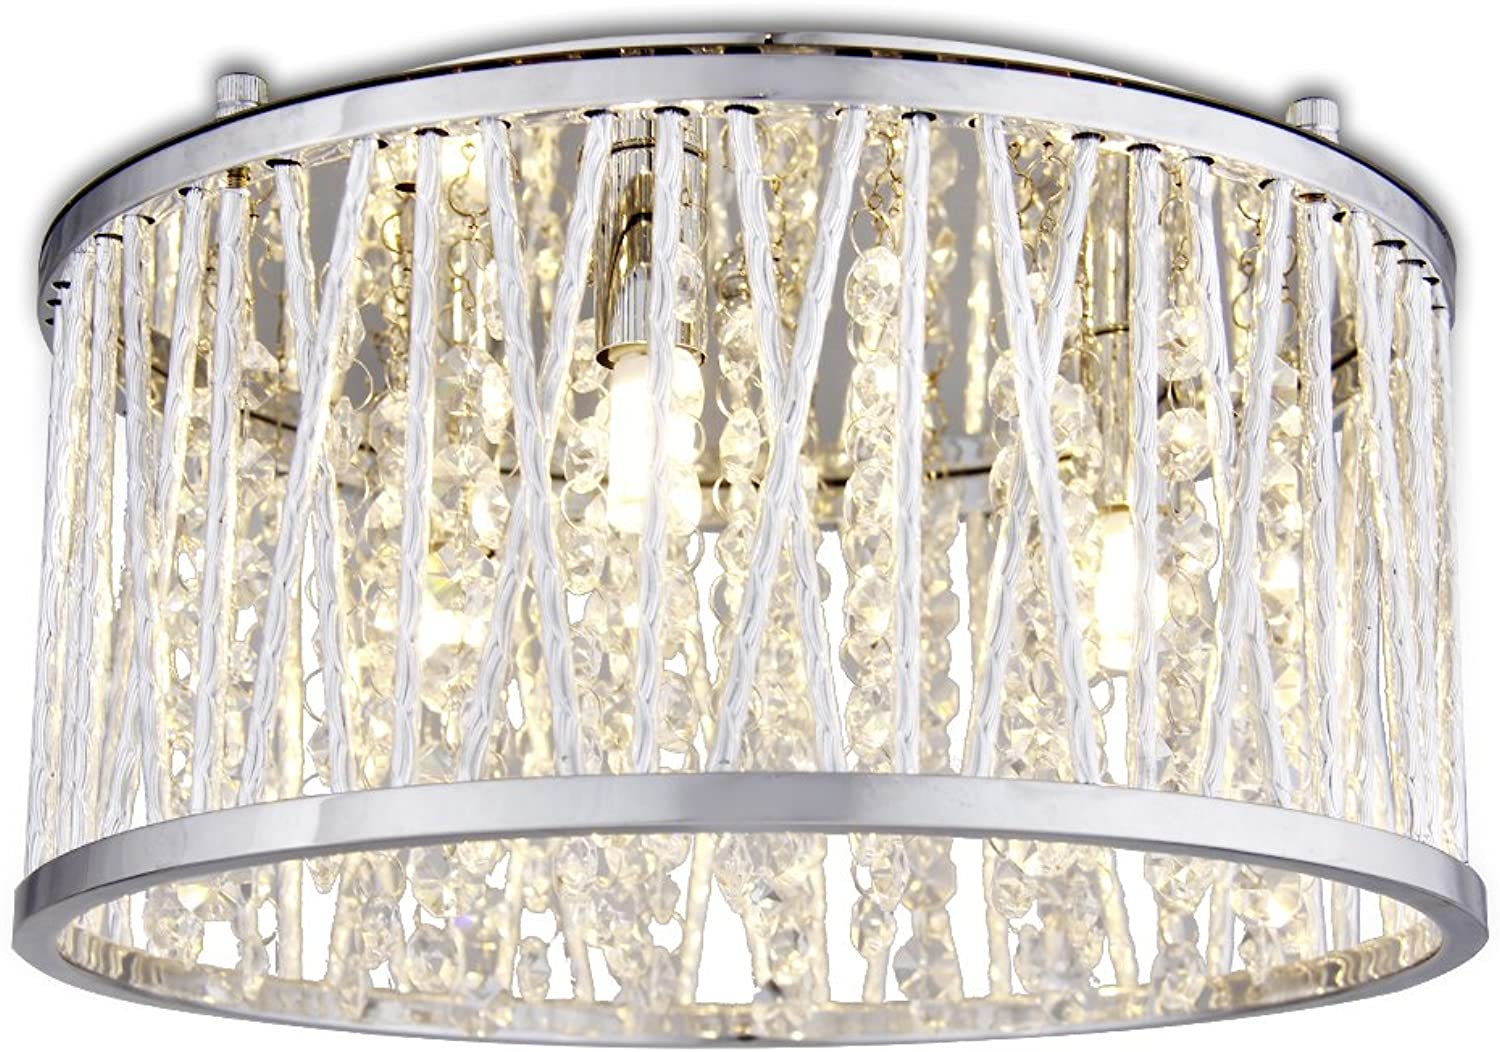 12  Loretta Flush mount Ceiling Light Fixture Pendant Polished Chrome, Polished Chrome cross-over shade with glistening Crystal strands for dimensional shine, perfect for entryways, dining rooms